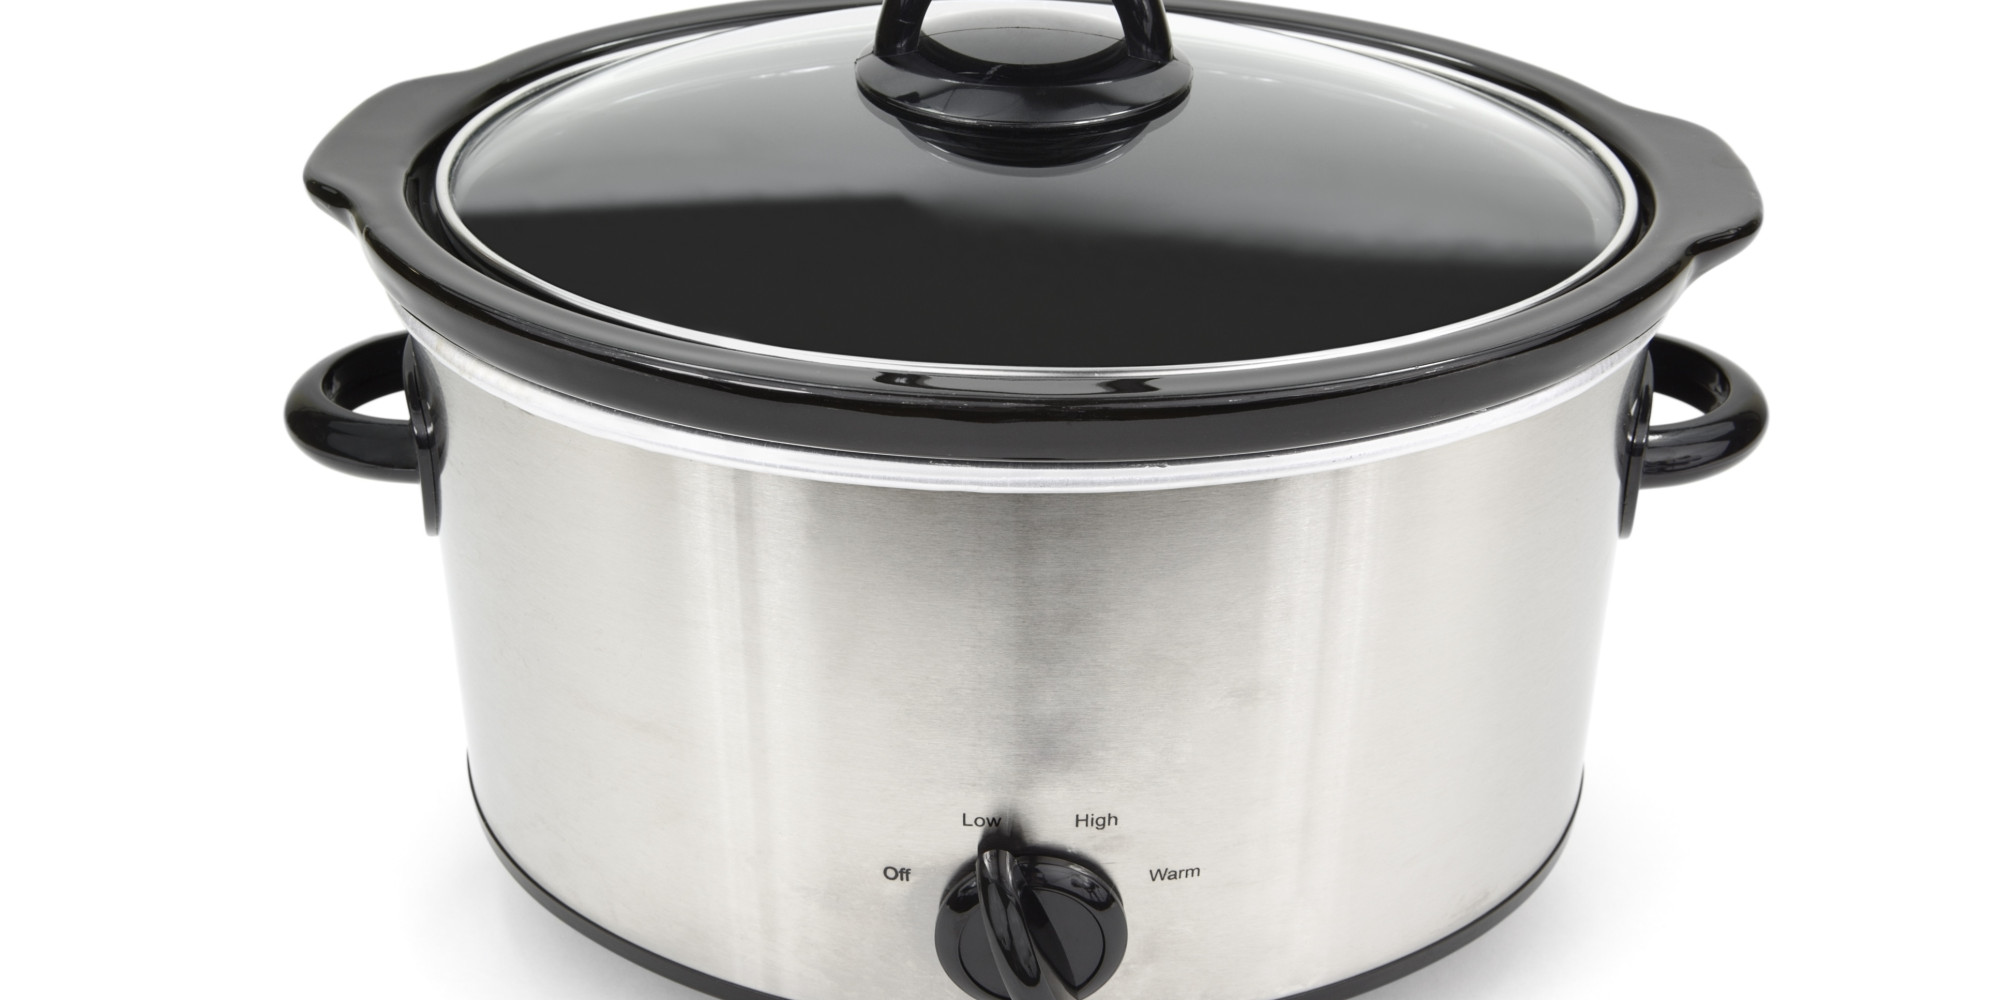 Brief History Of The Crock Pot The Original Slow Cooker